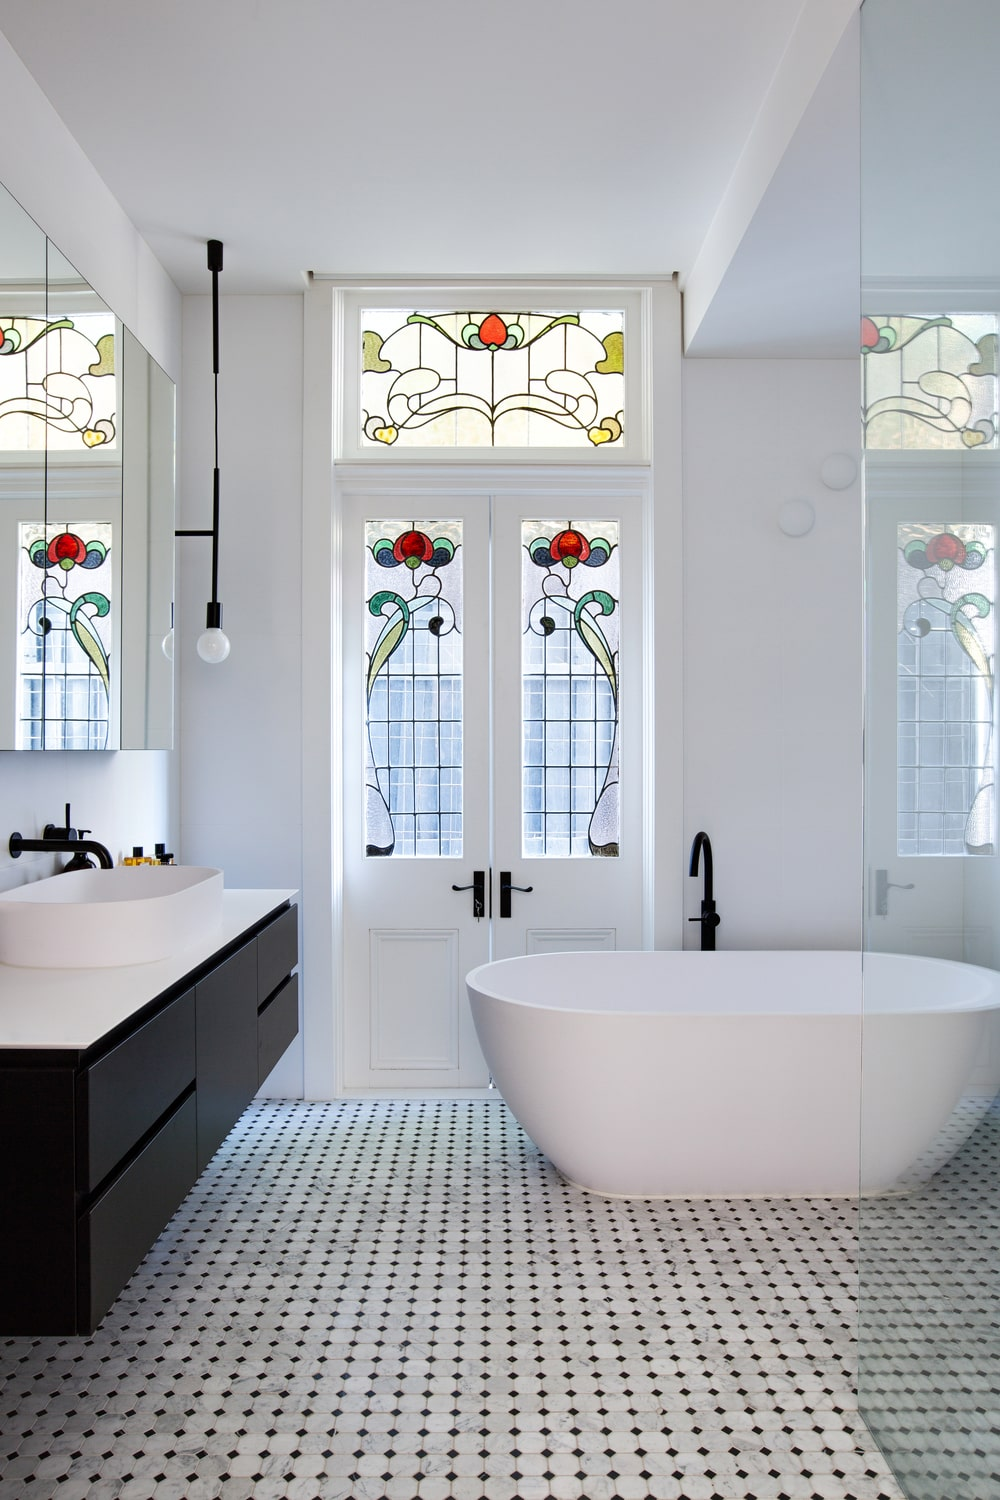 This bathroom has a black floating vanity contrasted by its white countertop and the white walls. Next to it is the freestanding white bathtub by a lovely set of doors with stained glass.